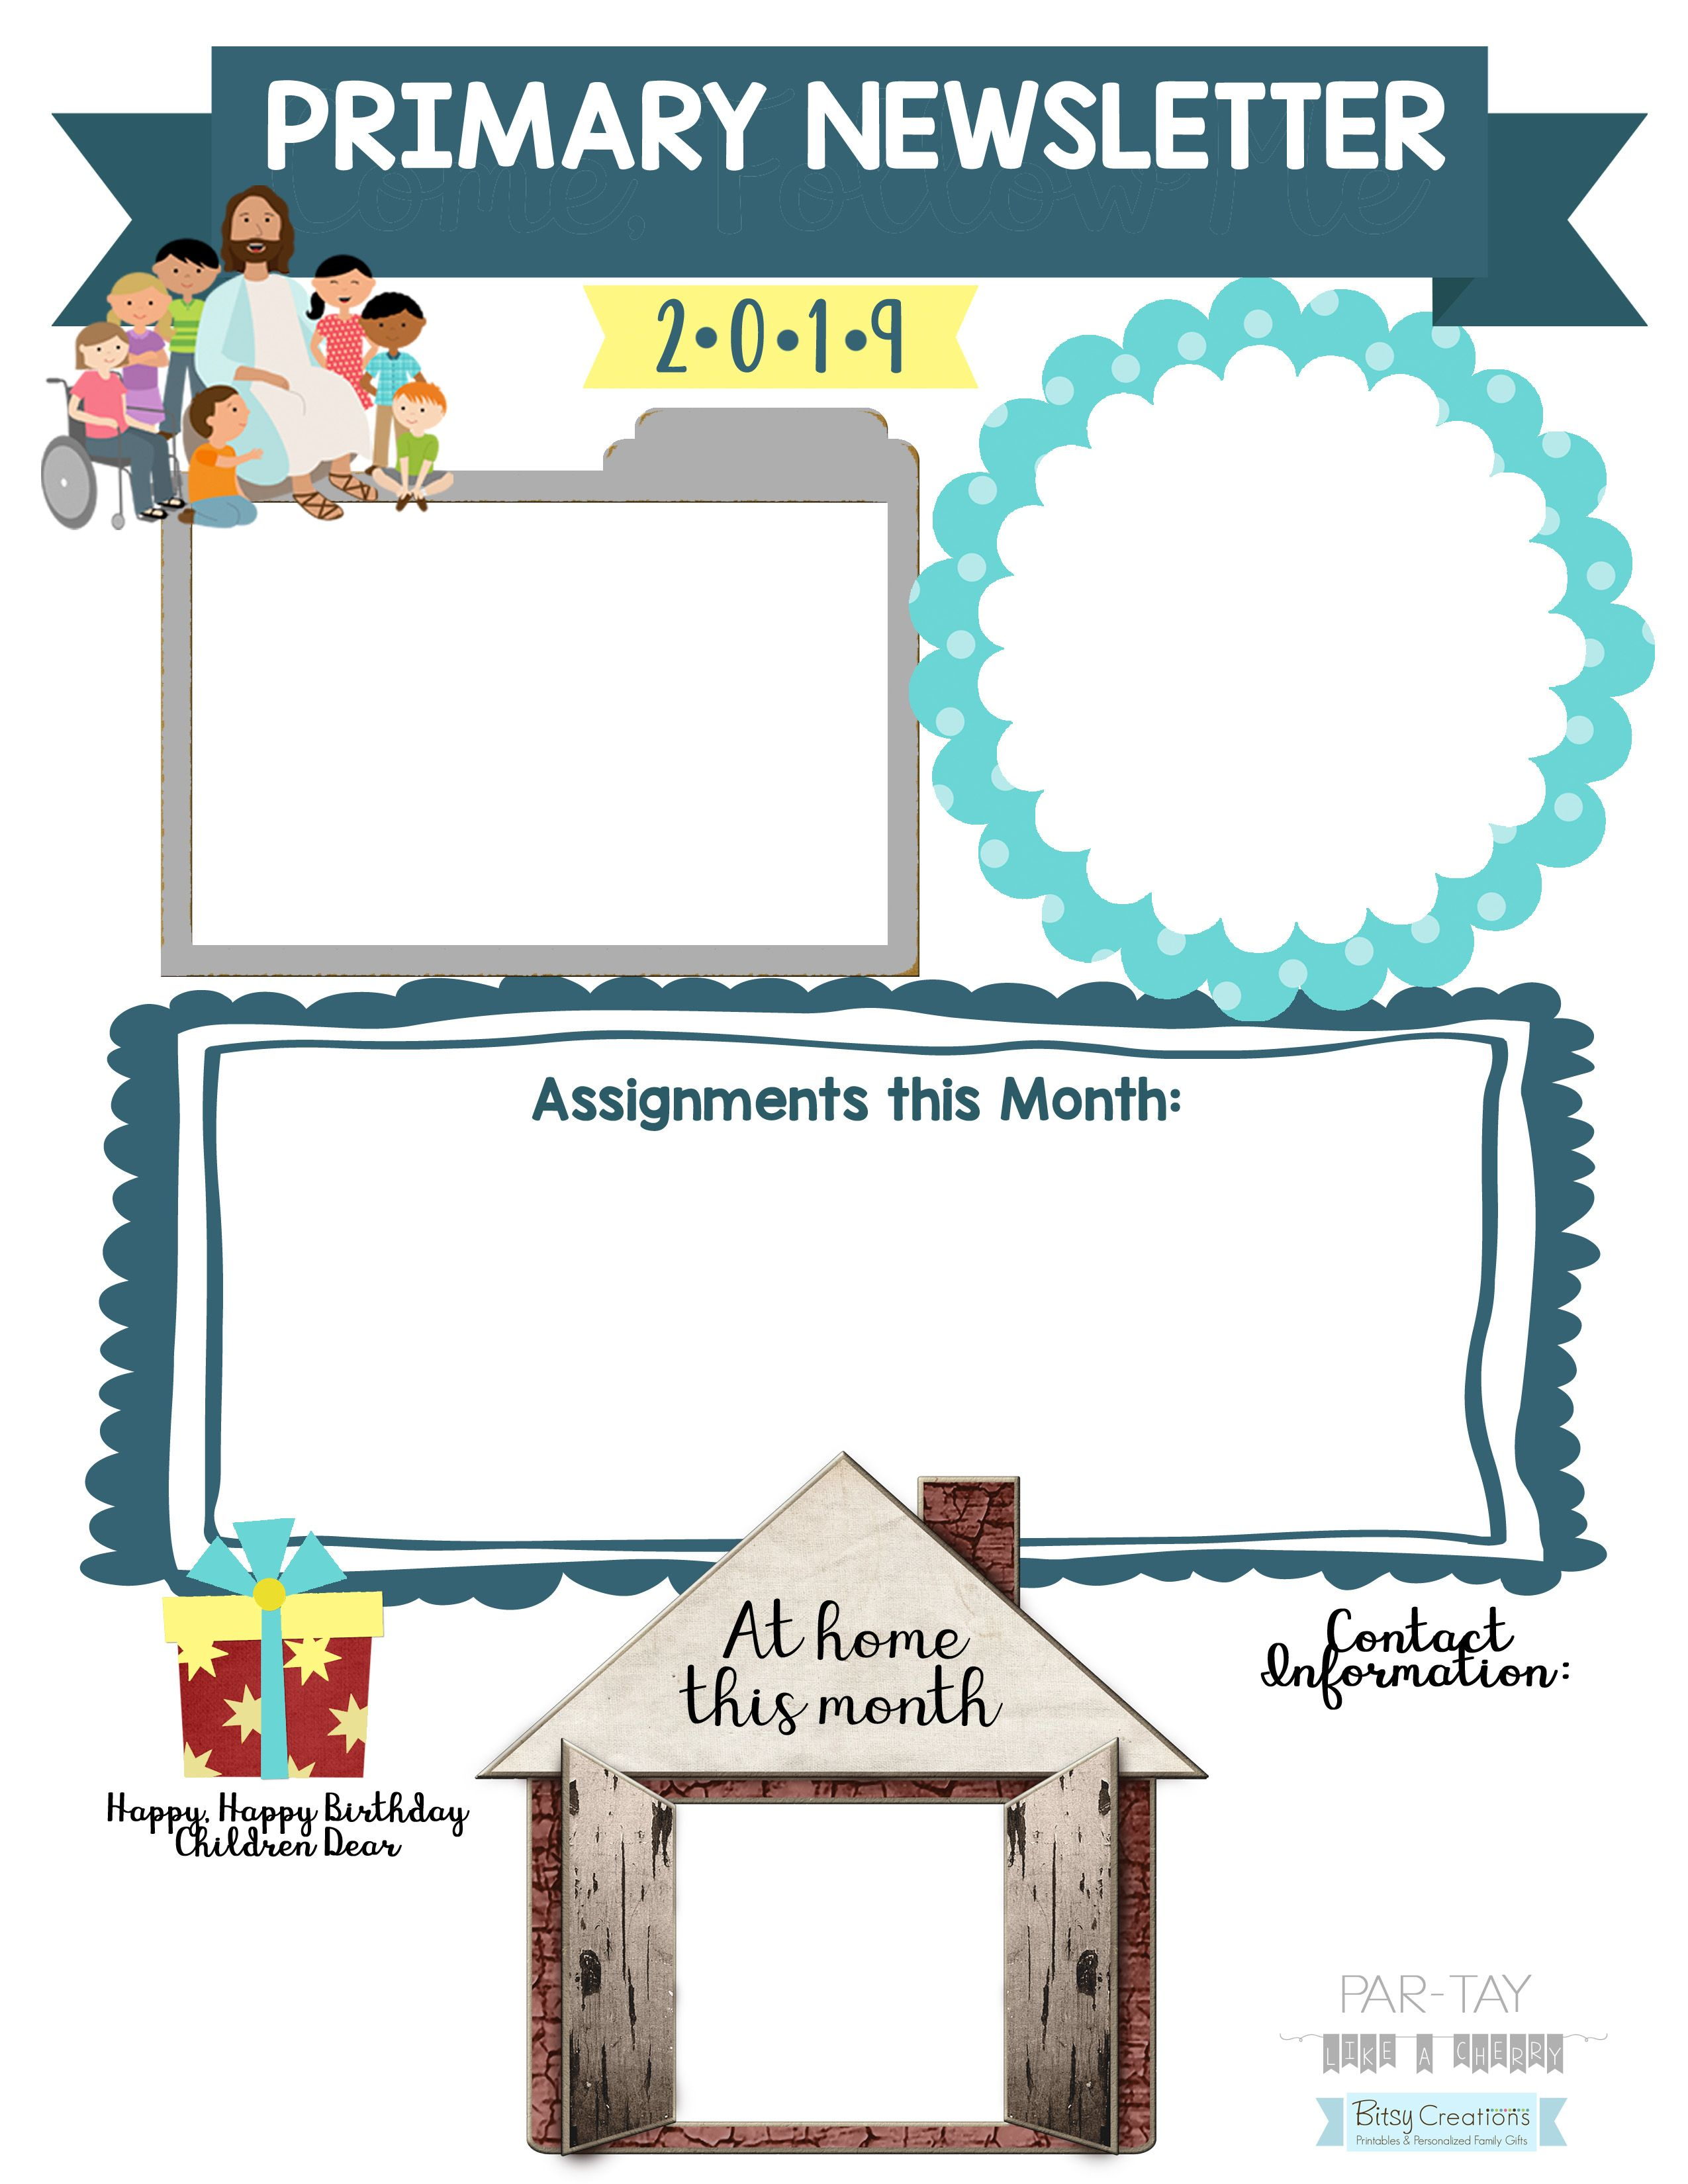 b33578446f90365e63e215ee01c3ad54  Primary Newsletter Templates Pdf on create your own printable, hr employee, lds relief society, chino california, cover design, february responsive classroom, safety box winter,